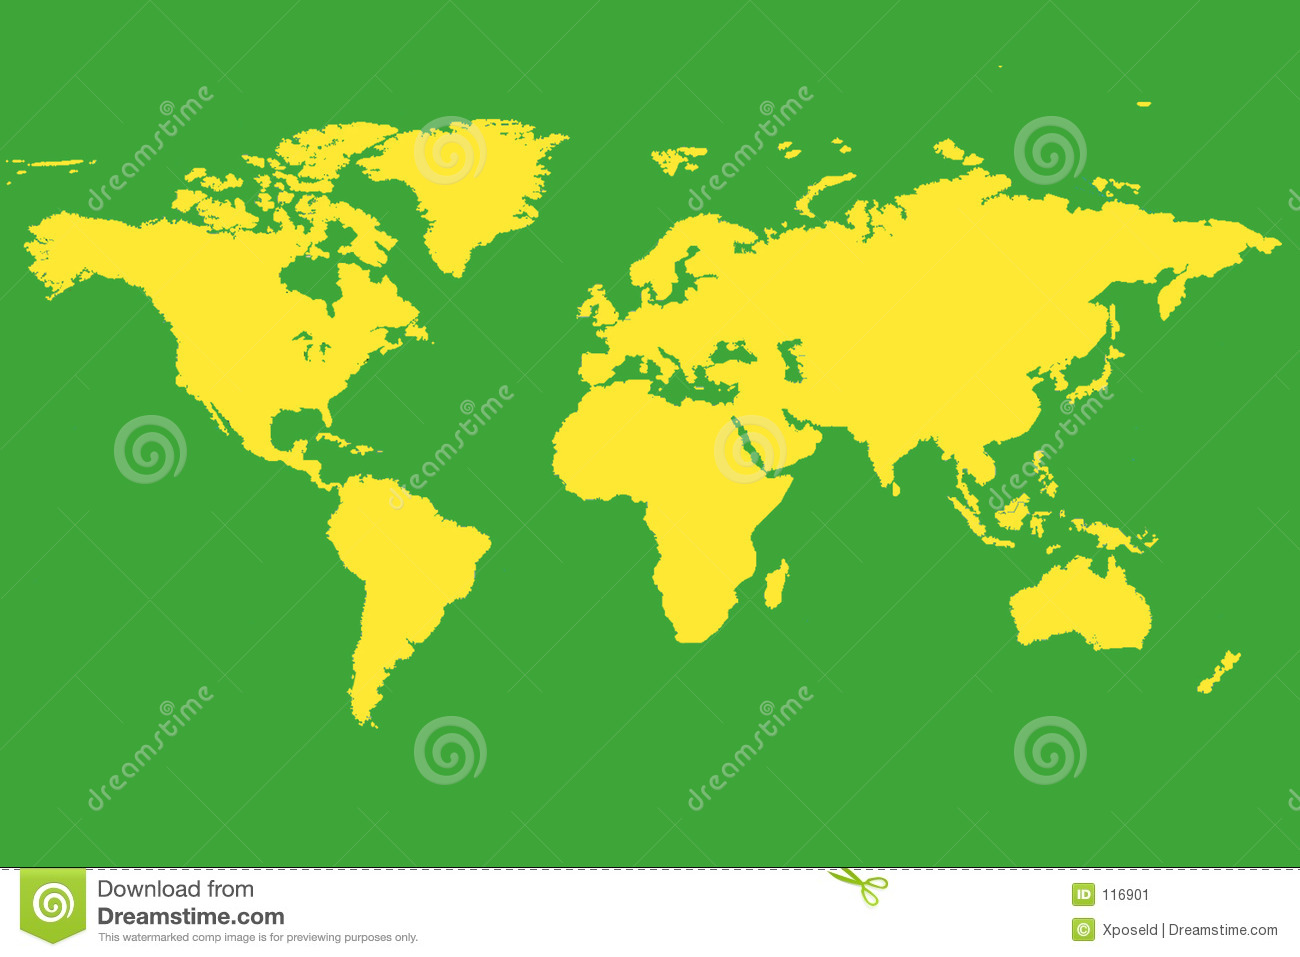 World Map Brazil Theme Image Image 116901 – Map World Brazil